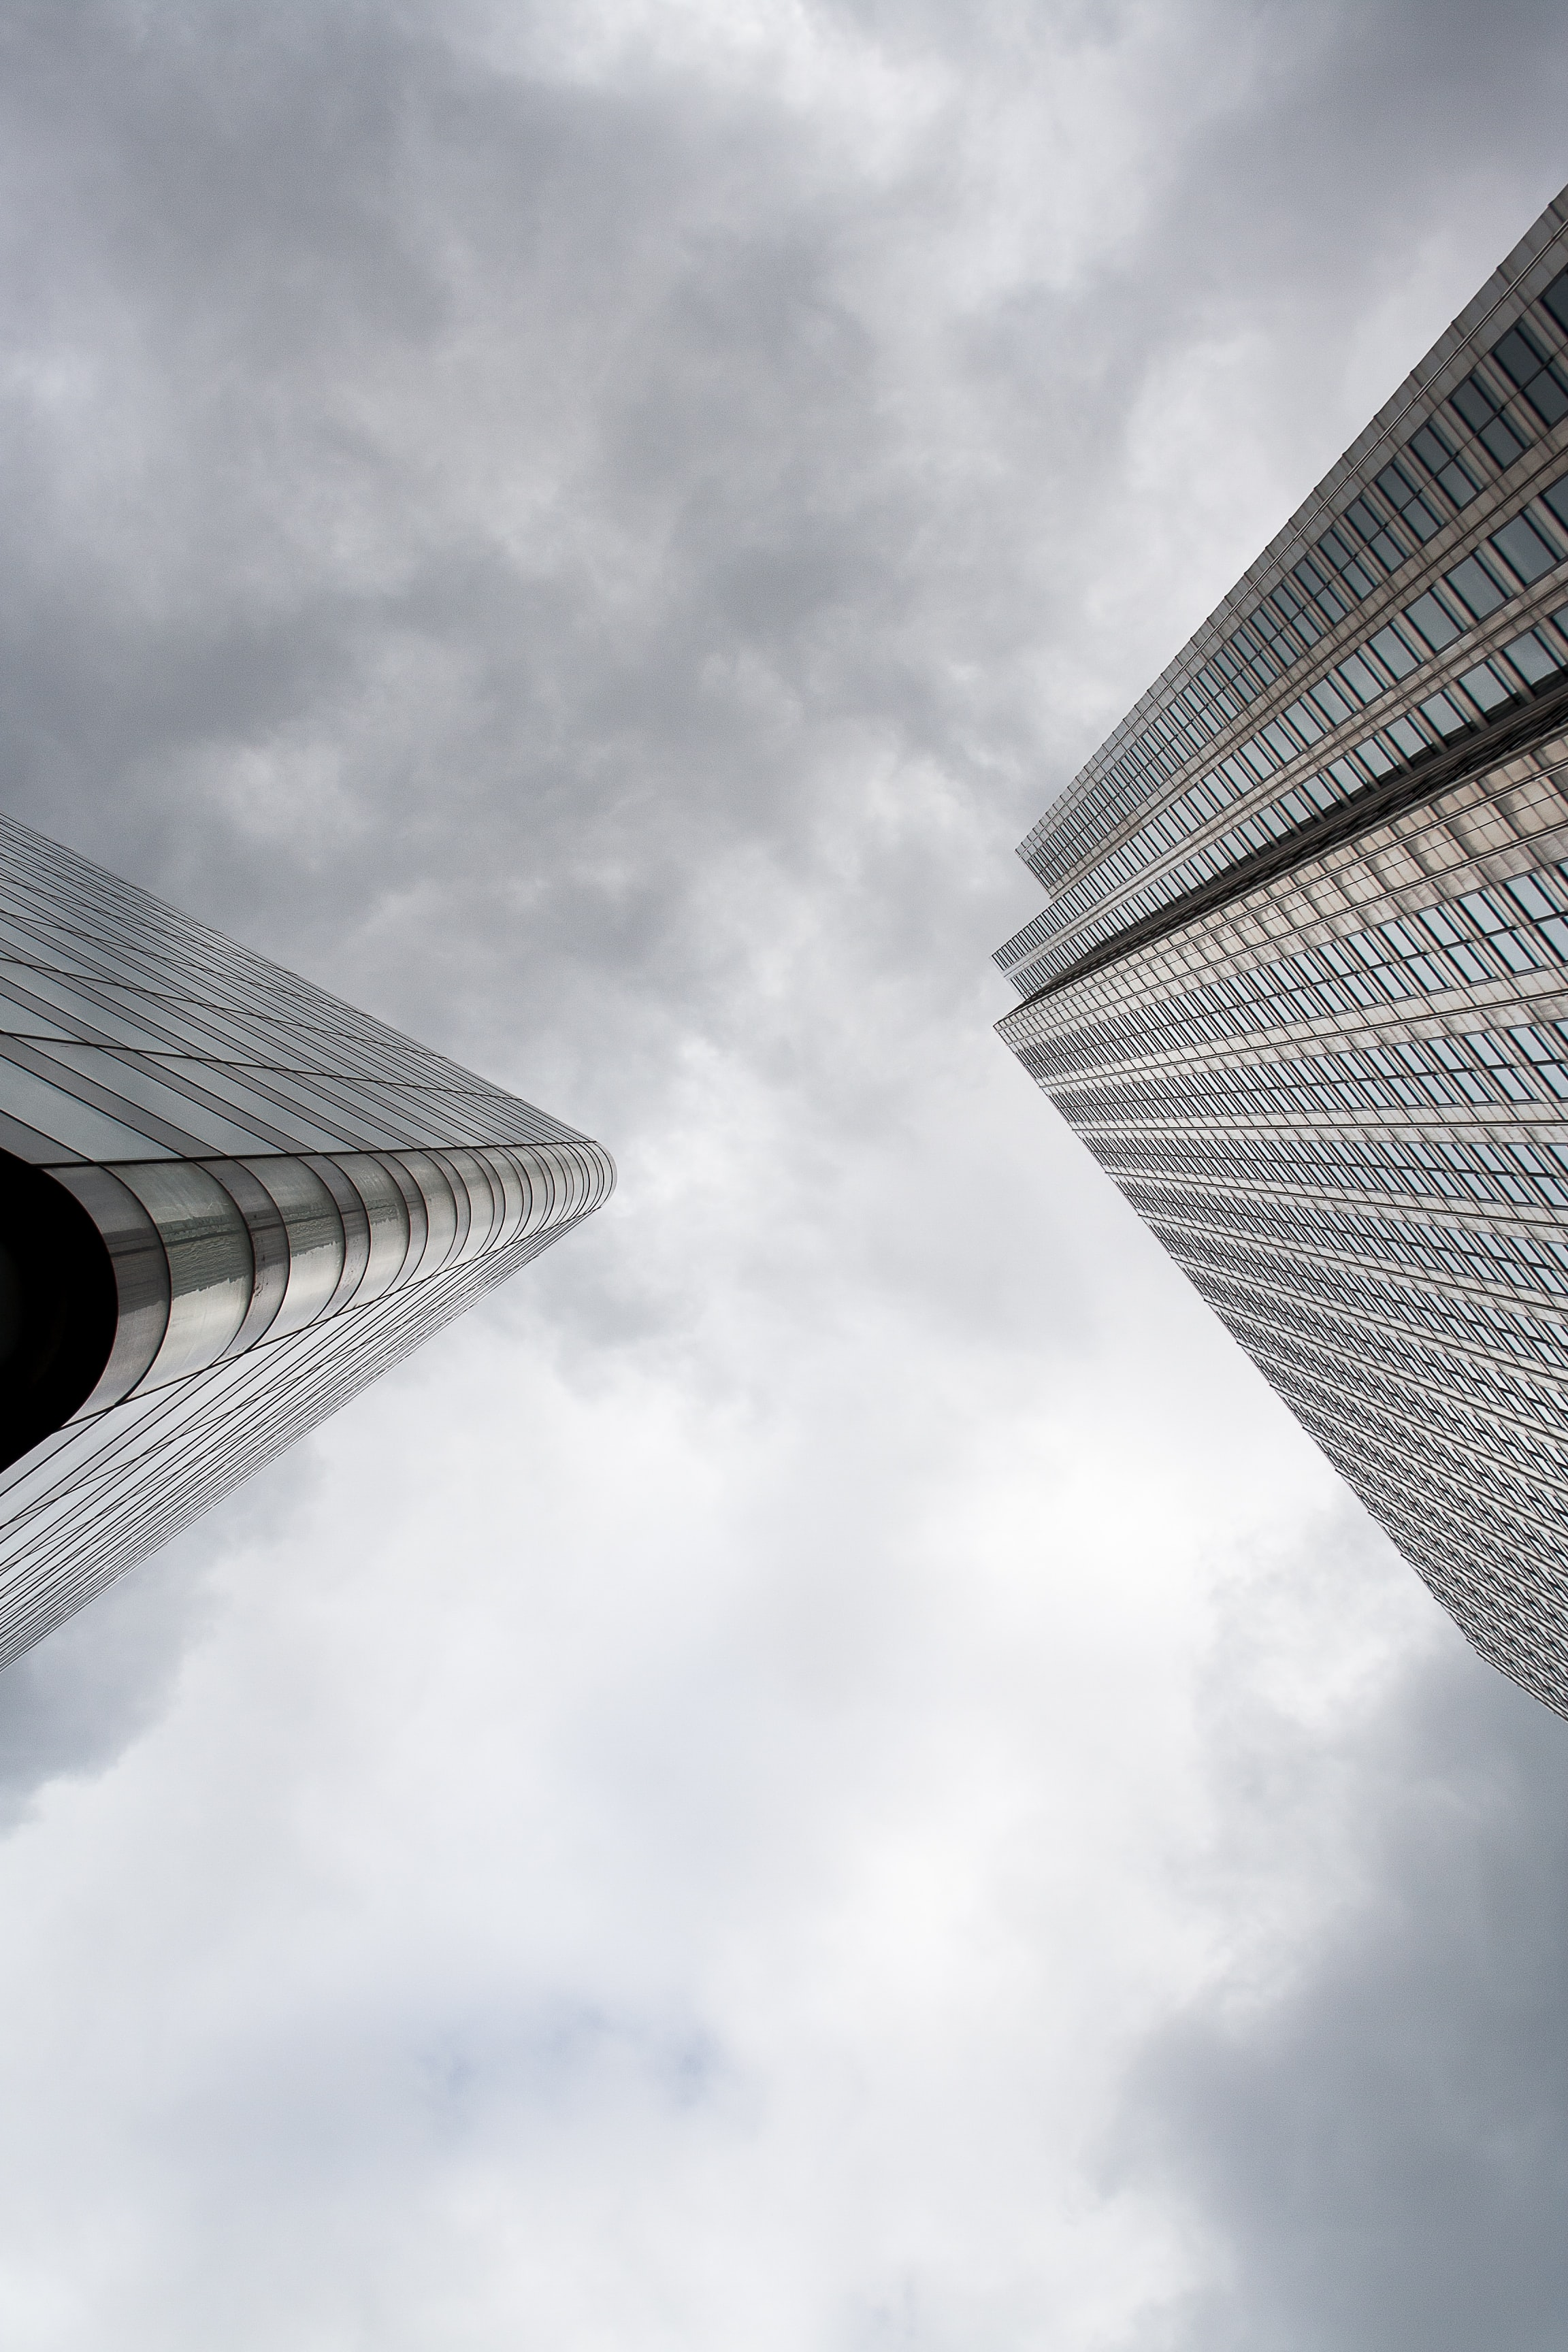 A low-angle shot of the corners of two skyscrapers against a cloudy sky